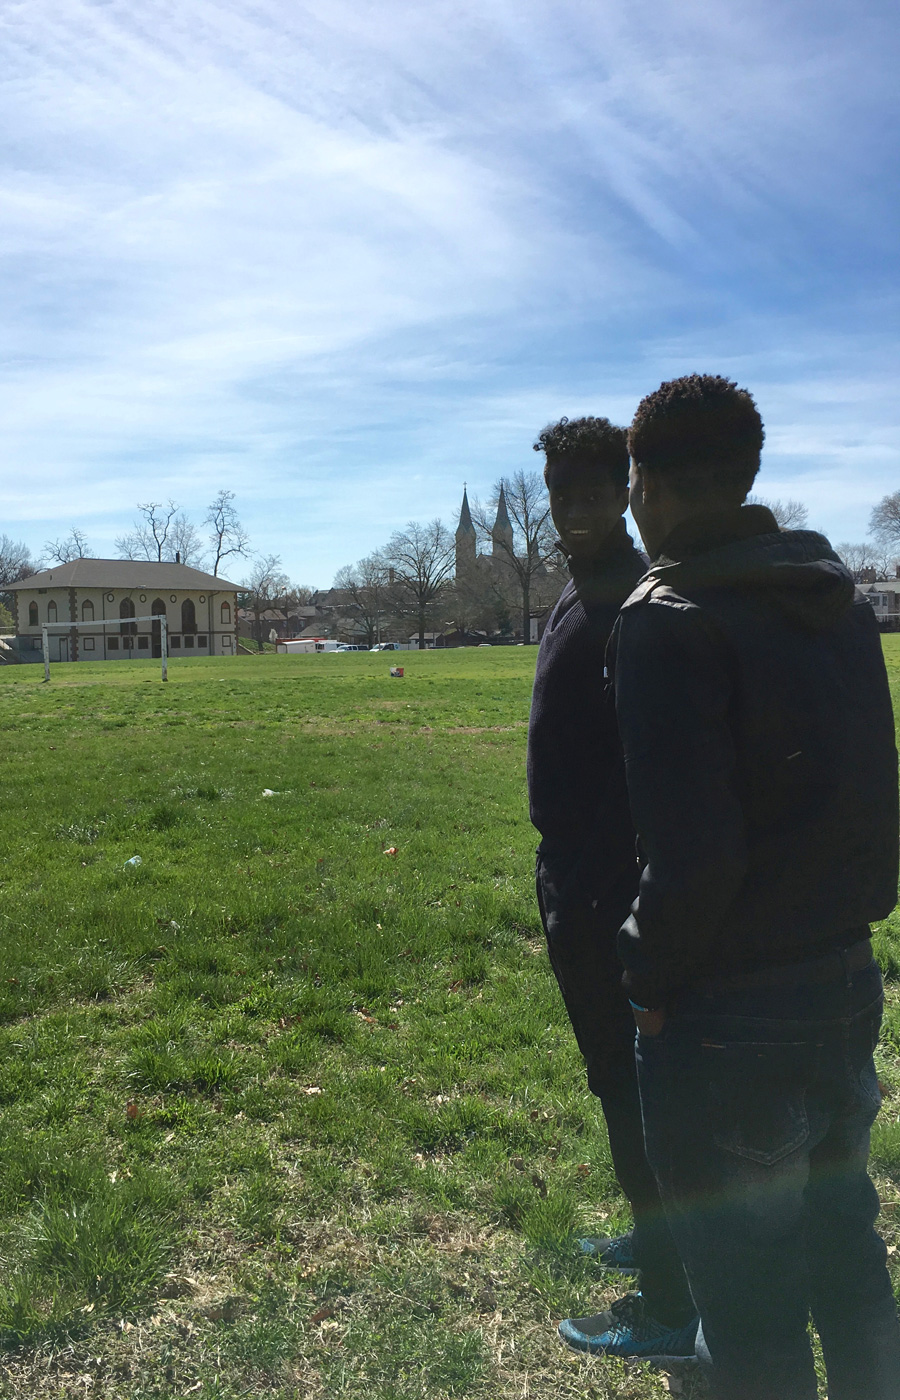 Saadiq Mohammed and Sa'ad Hussein, looking at the soccer field at Marquette Park, which is two blocks from Sa'ad's new apartment.